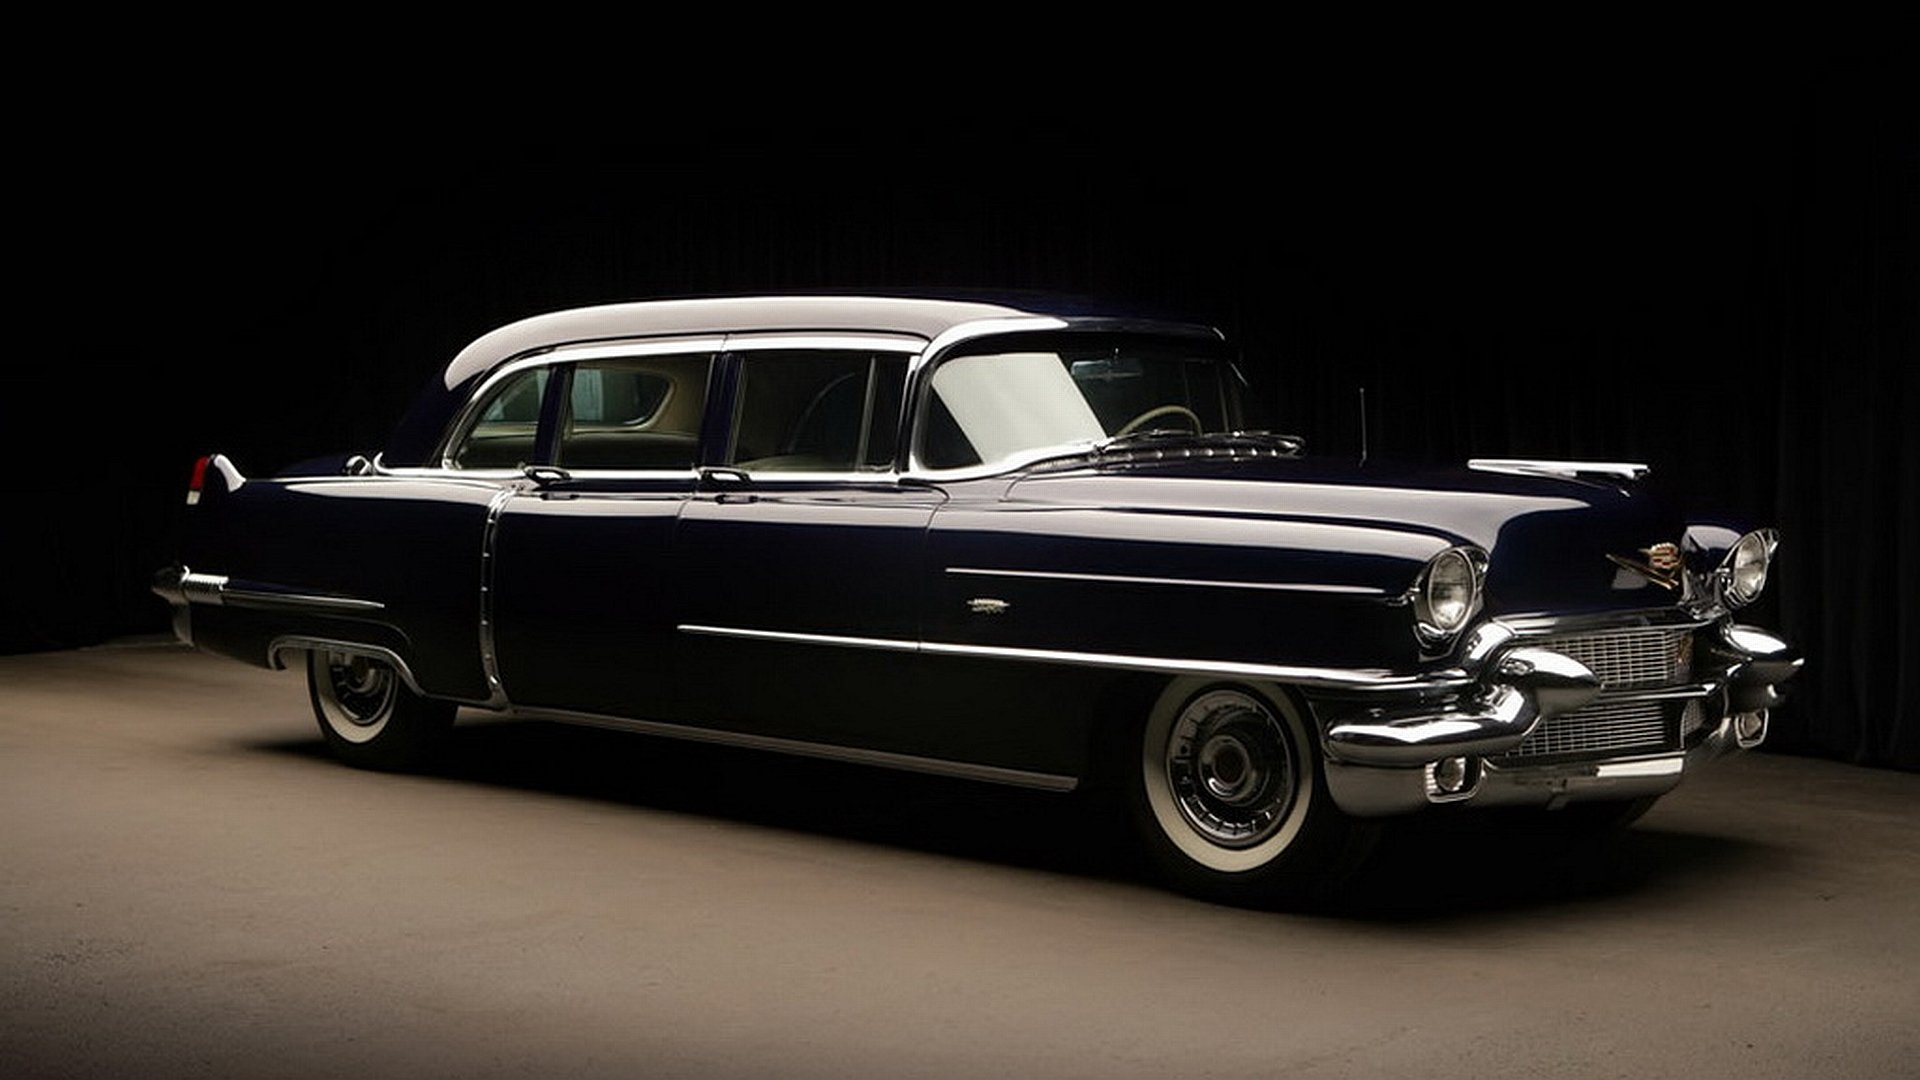 Old Cadillac Cars Hd Wallpapers 1956 Cadillac Fleetwood Series 75 Limousine Hd Wallpaper